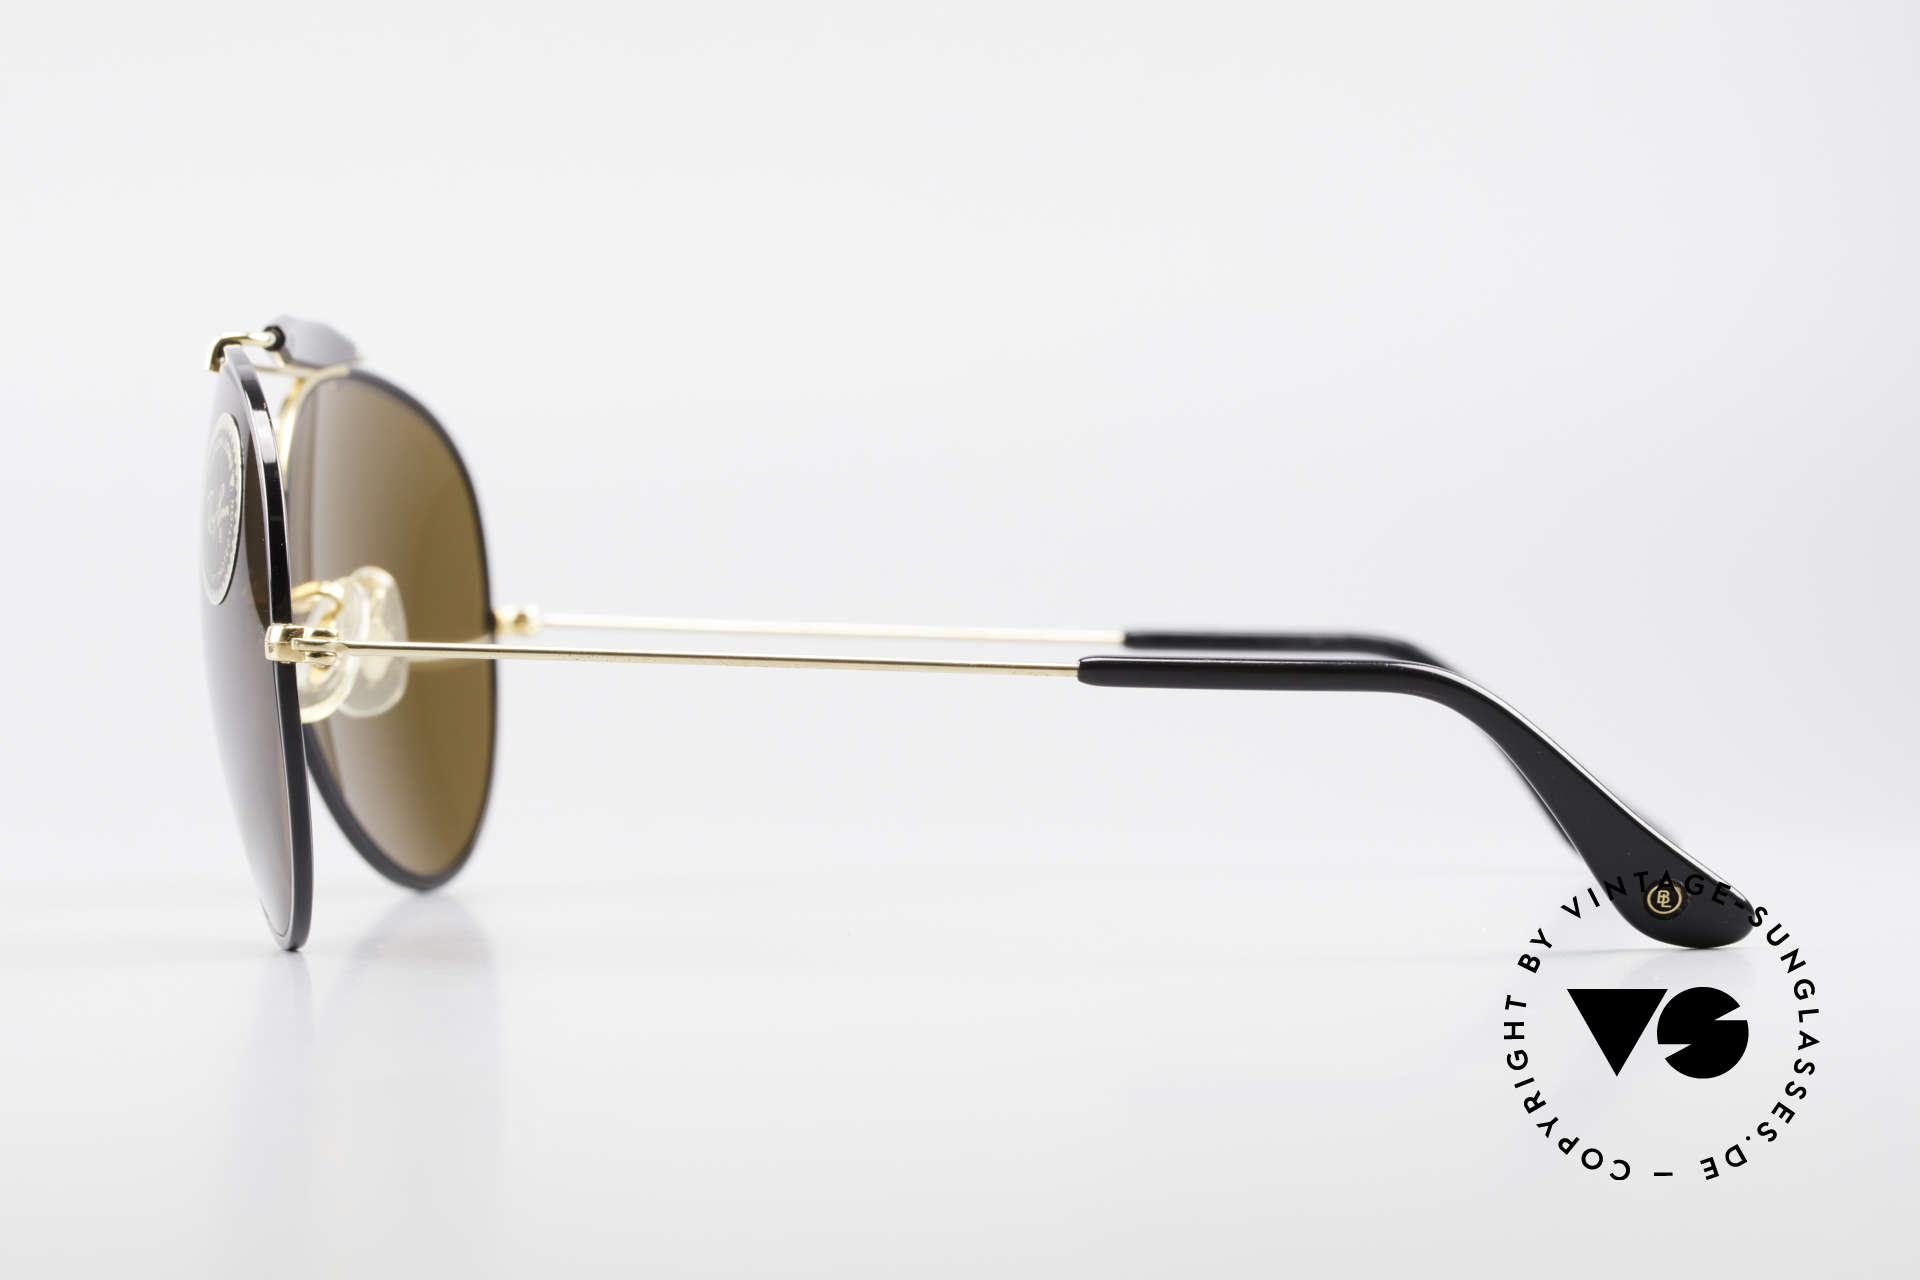 Ray Ban Outdoorsman II Precious Metals USA Ray-Ban, made in the 1970's & 80's by Bausch&Lomb, USA, Made for Men